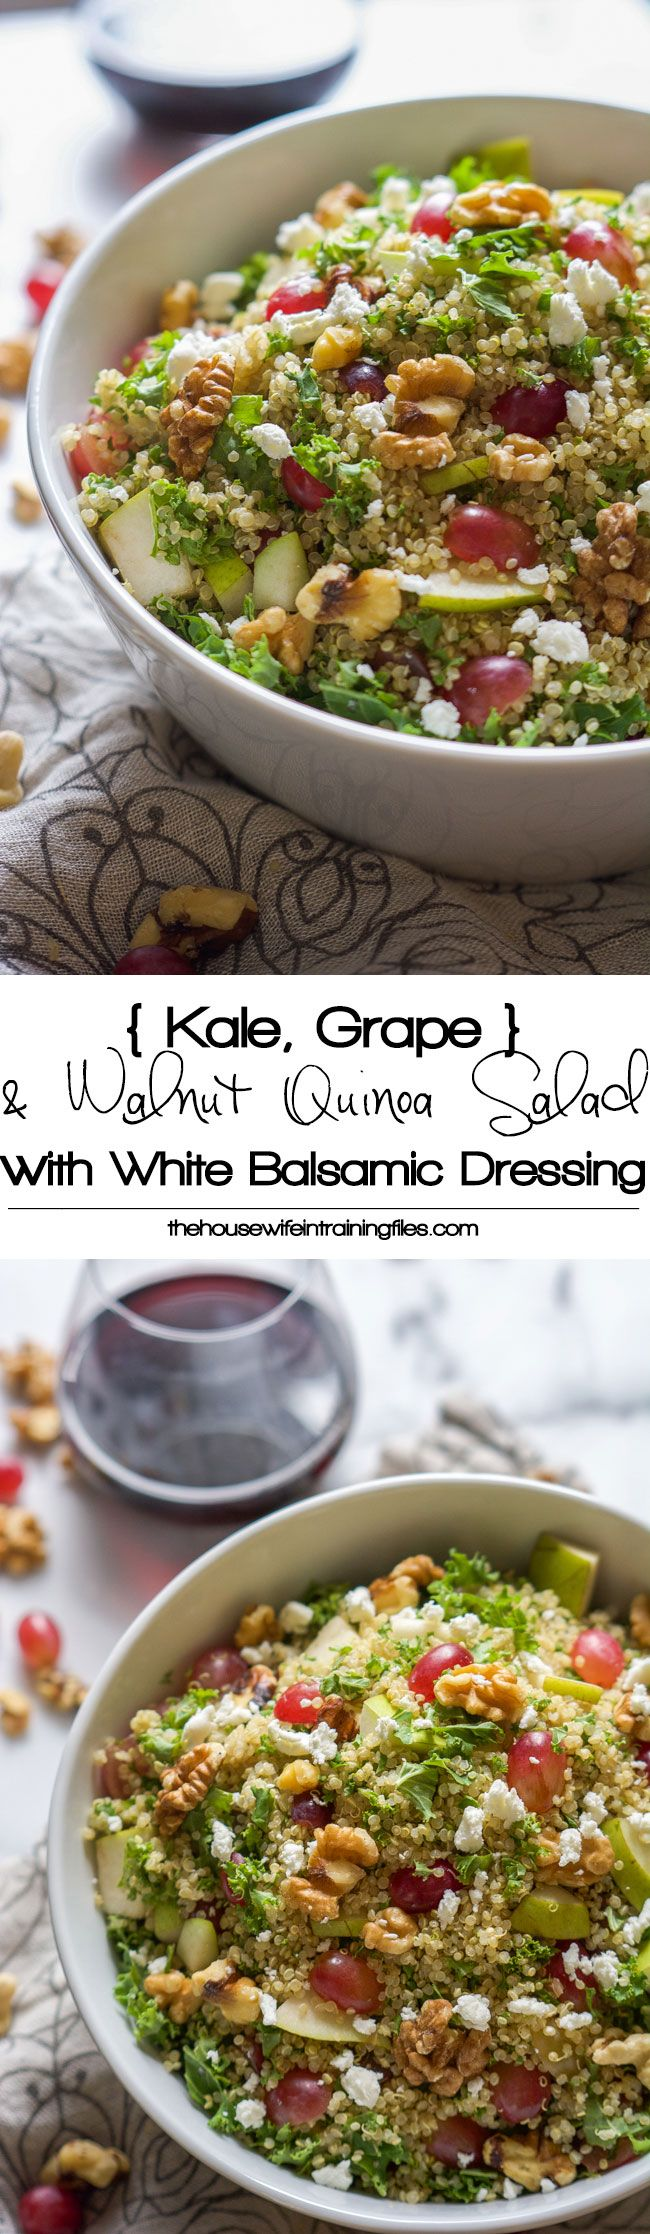 Walnut, Grape & Kale Quinoa Salad with White Balsamic Dressing is a salad that is perfect to make ahead and is filled with sweet, savory, nutty grains and greens to keep you healthy and full! #quinoasalad #glutenfree #makeahead #salad